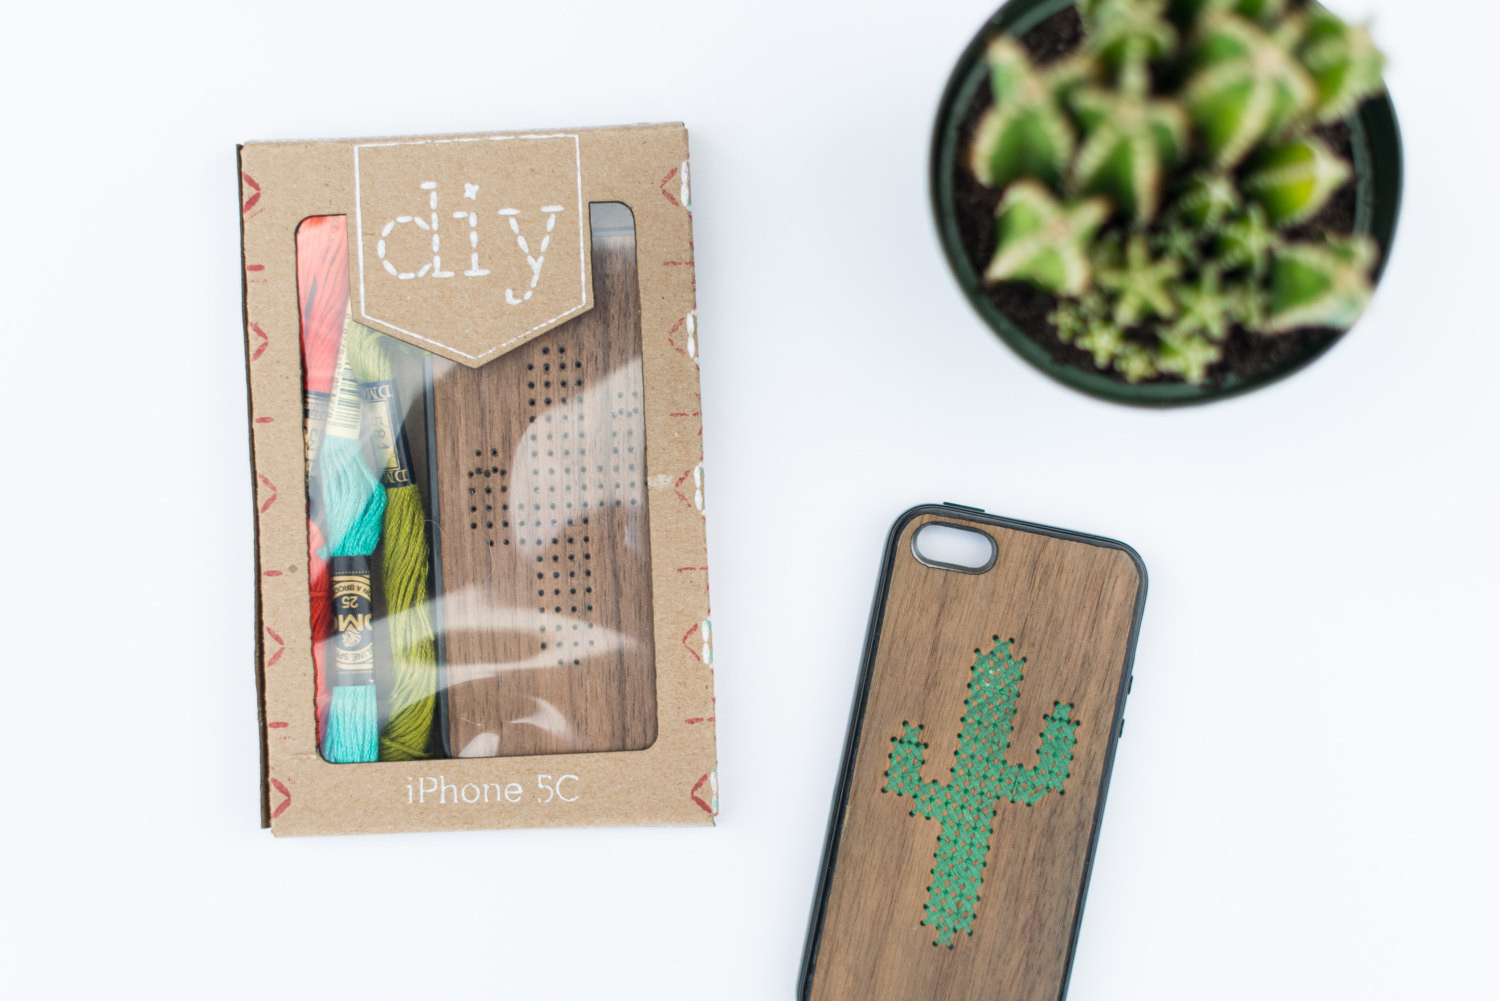 Best ideas about DIY Iphone Case Kit . Save or Pin diy embroidery iphone case kit by SavvieStudio on Etsy Now.